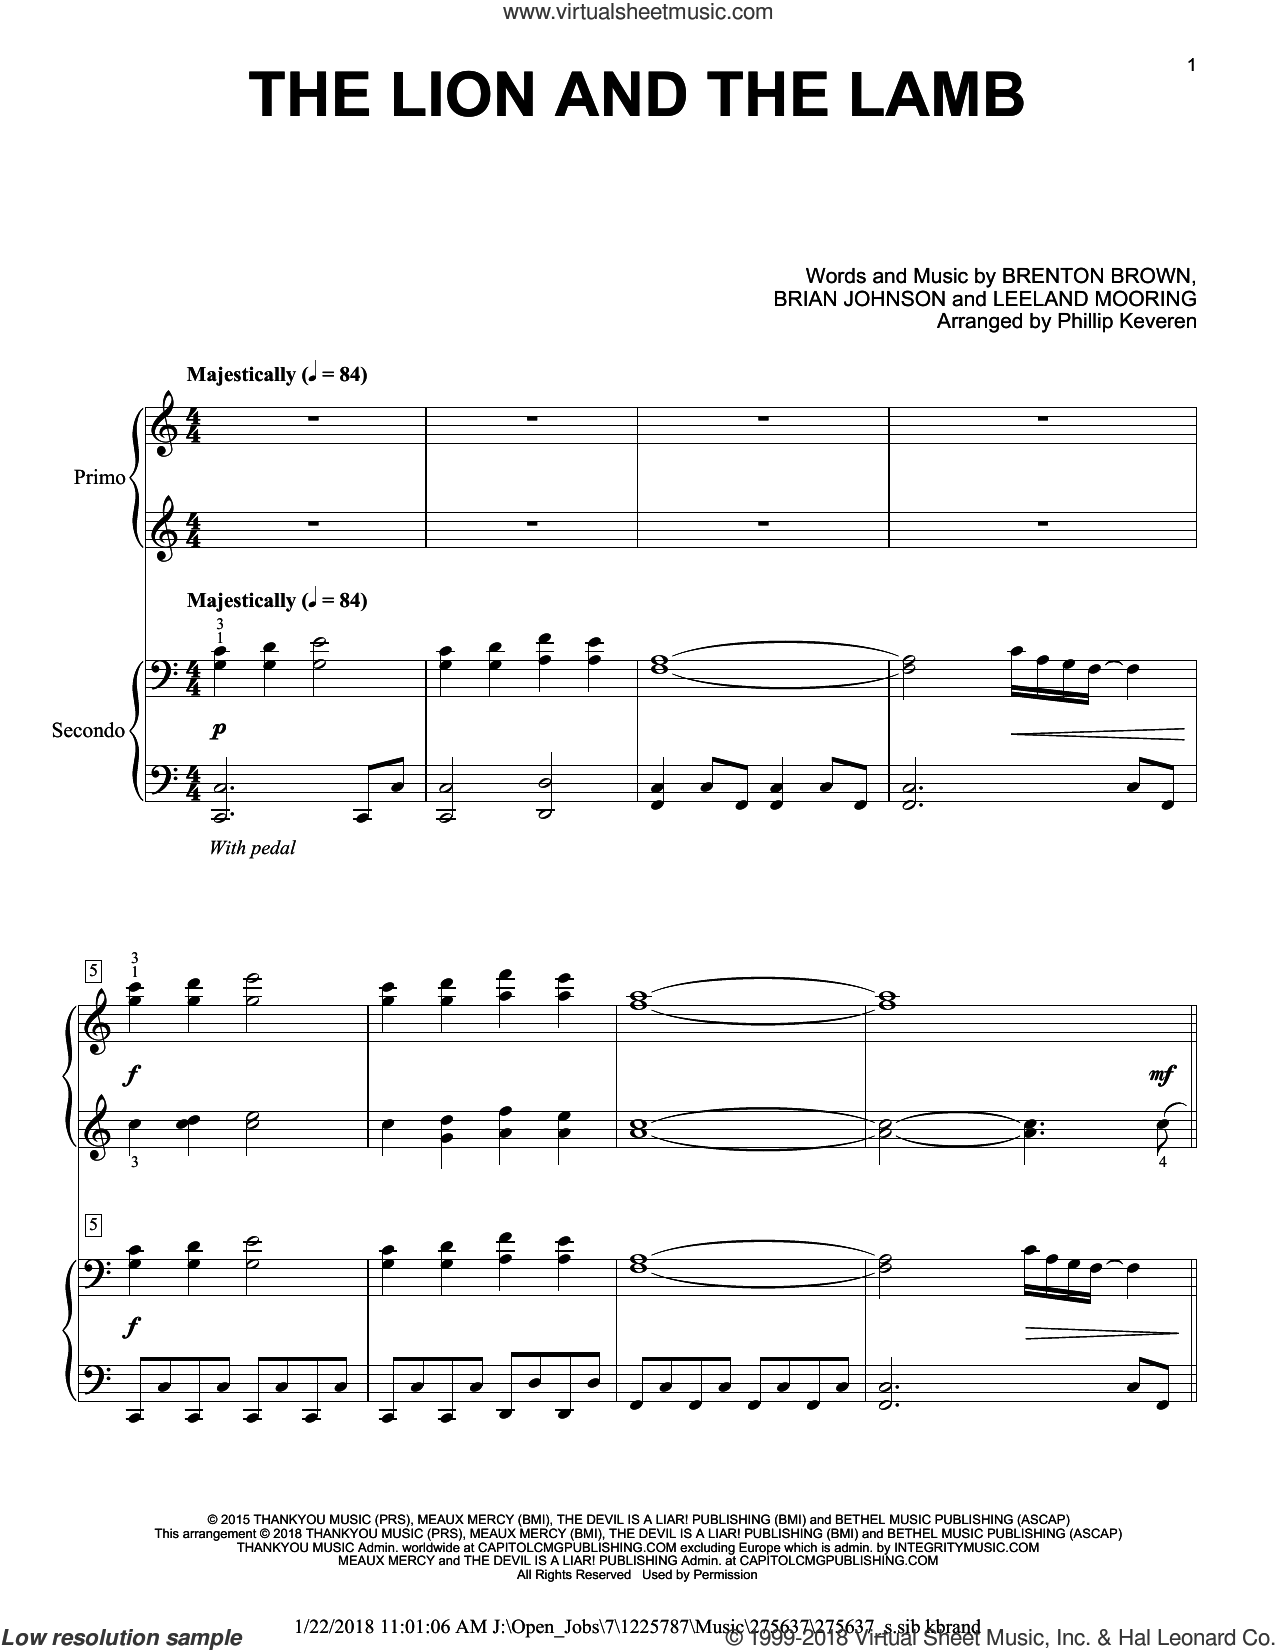 The Lion And The Lamb sheet music for piano four hands by Brian Johnson, Phillip Keveren, Big Daddy Weave, Brenton Brown and Leeland Mooring, intermediate skill level